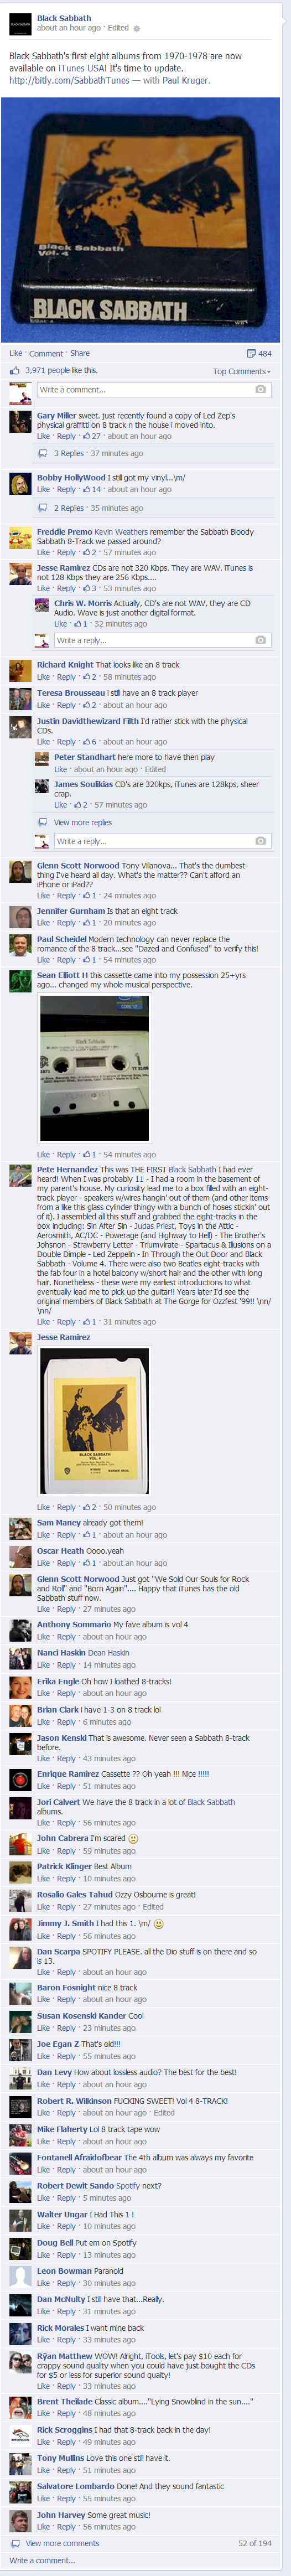 Screenshot - Black Sabbath Albums On iTunes Facebook Post Comment Thread